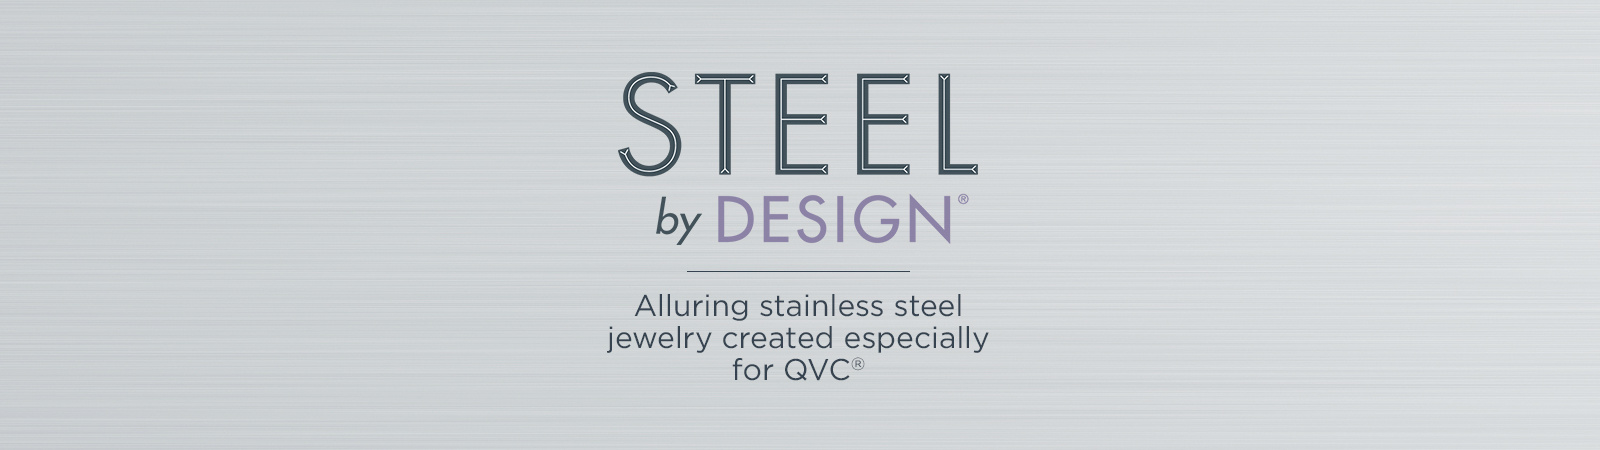 Steel by Design. Alluring stainless steel jewelry created especially for QVC®